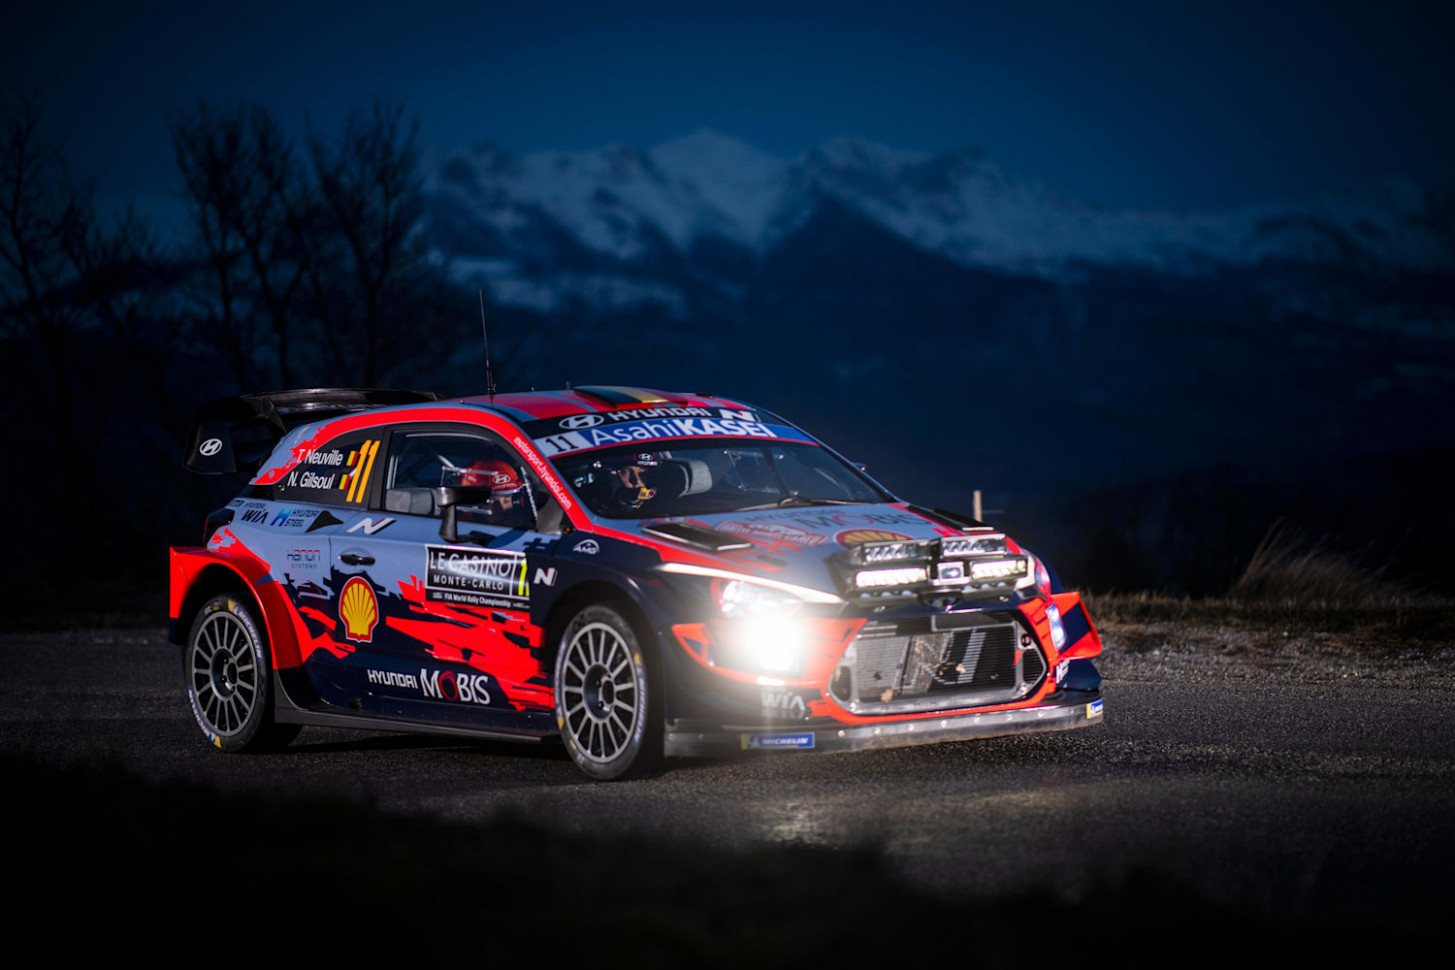 WRC Monte Carlo Rally 8: Race report and results